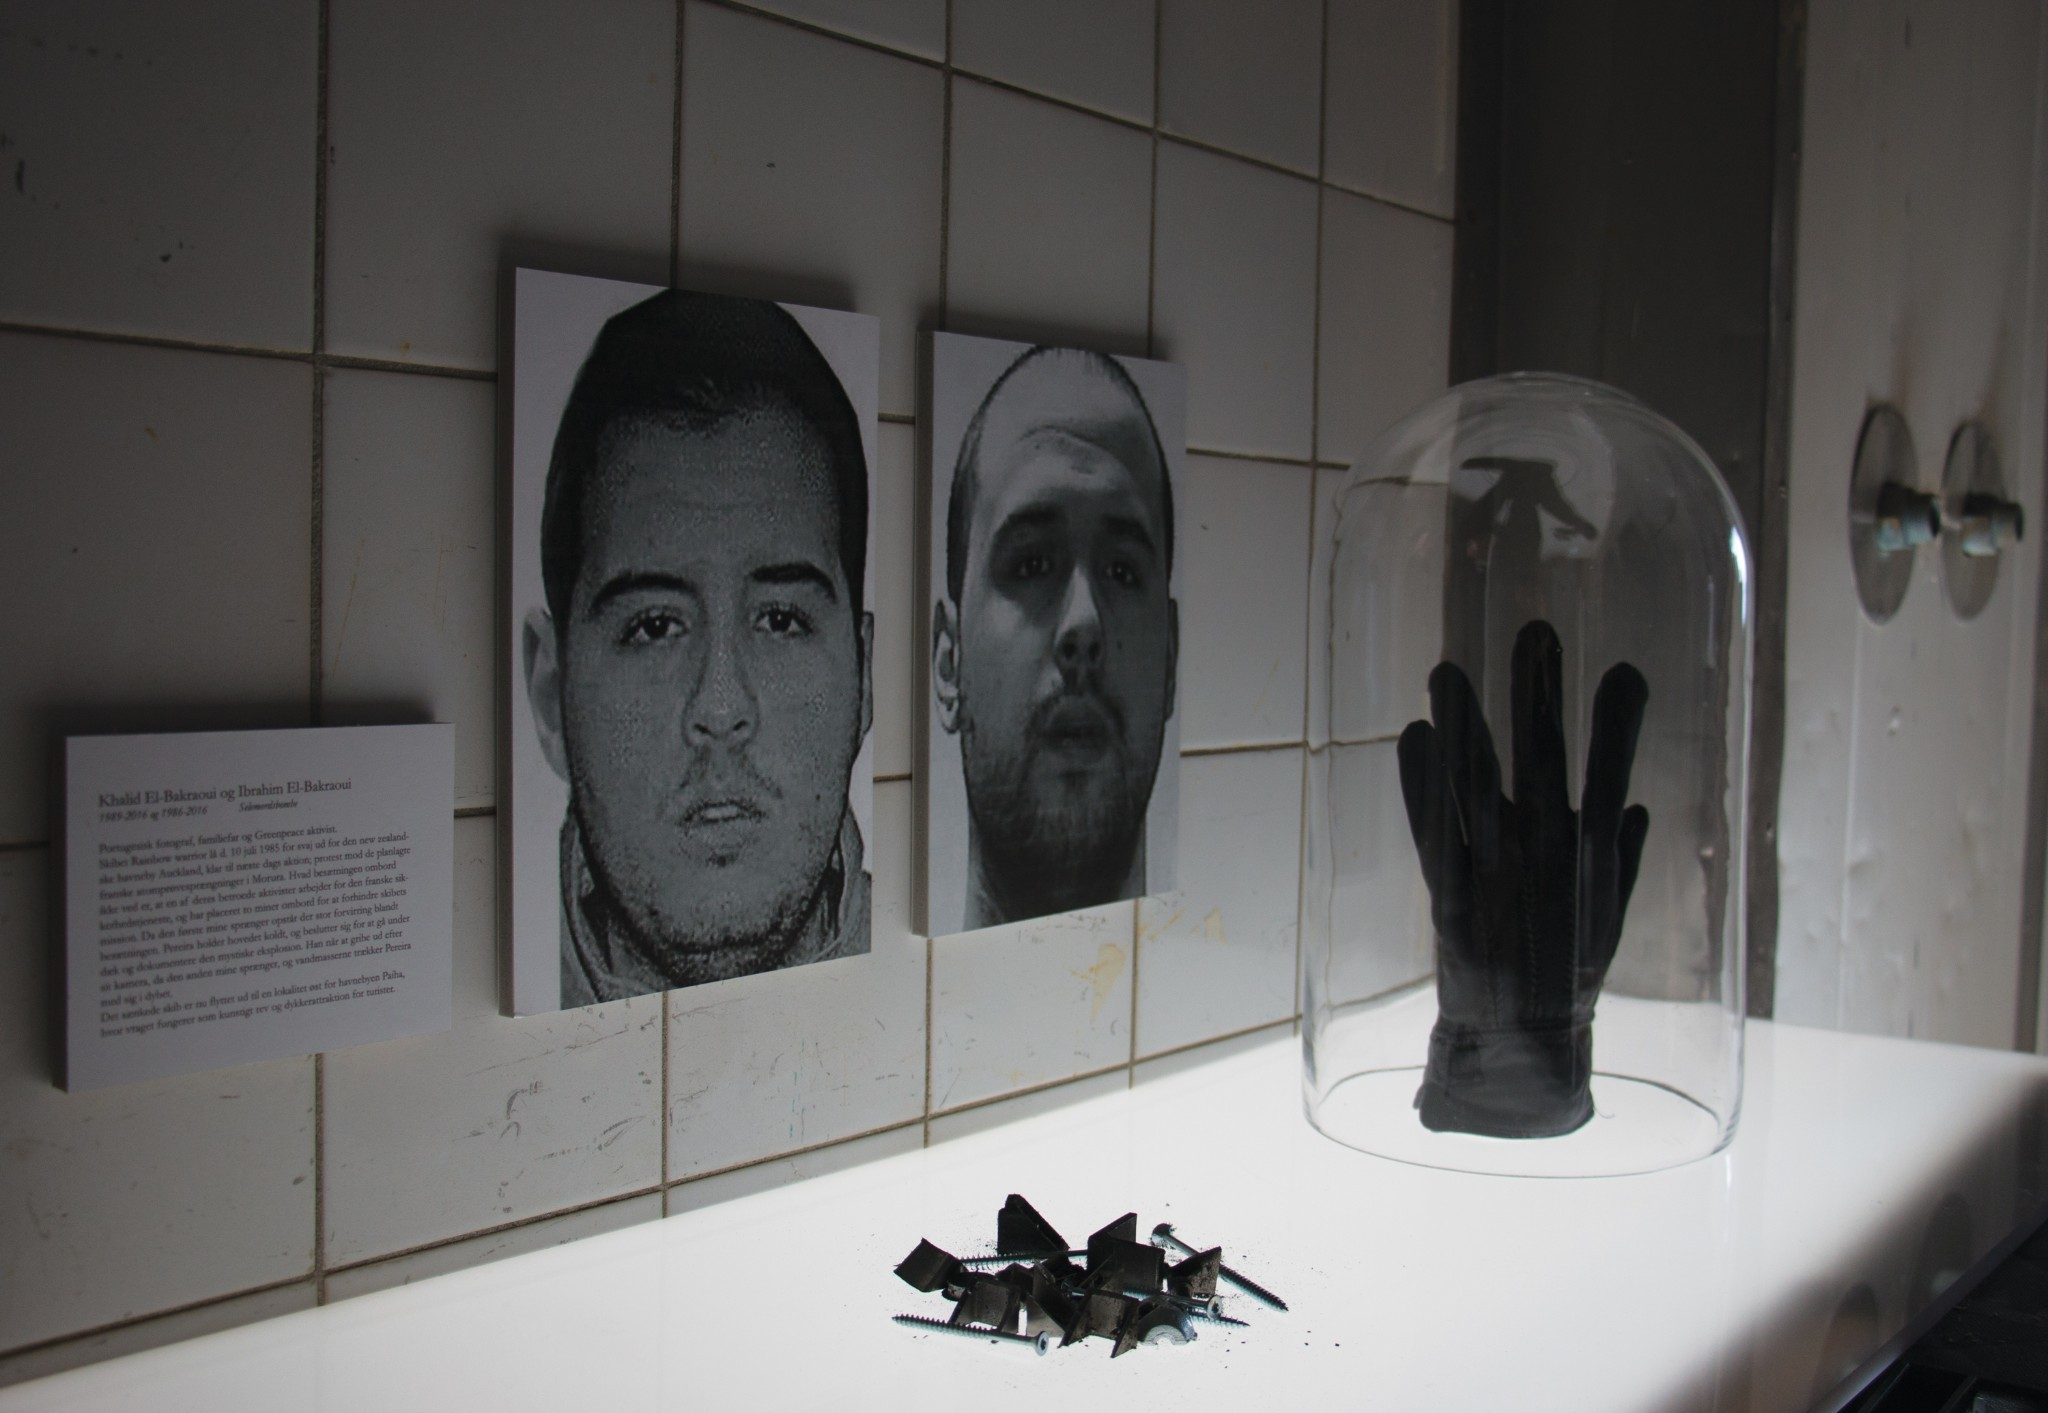 Denmark's 'Martyr Museum' Places Socrates And Suicide Bombers Side-By-Side